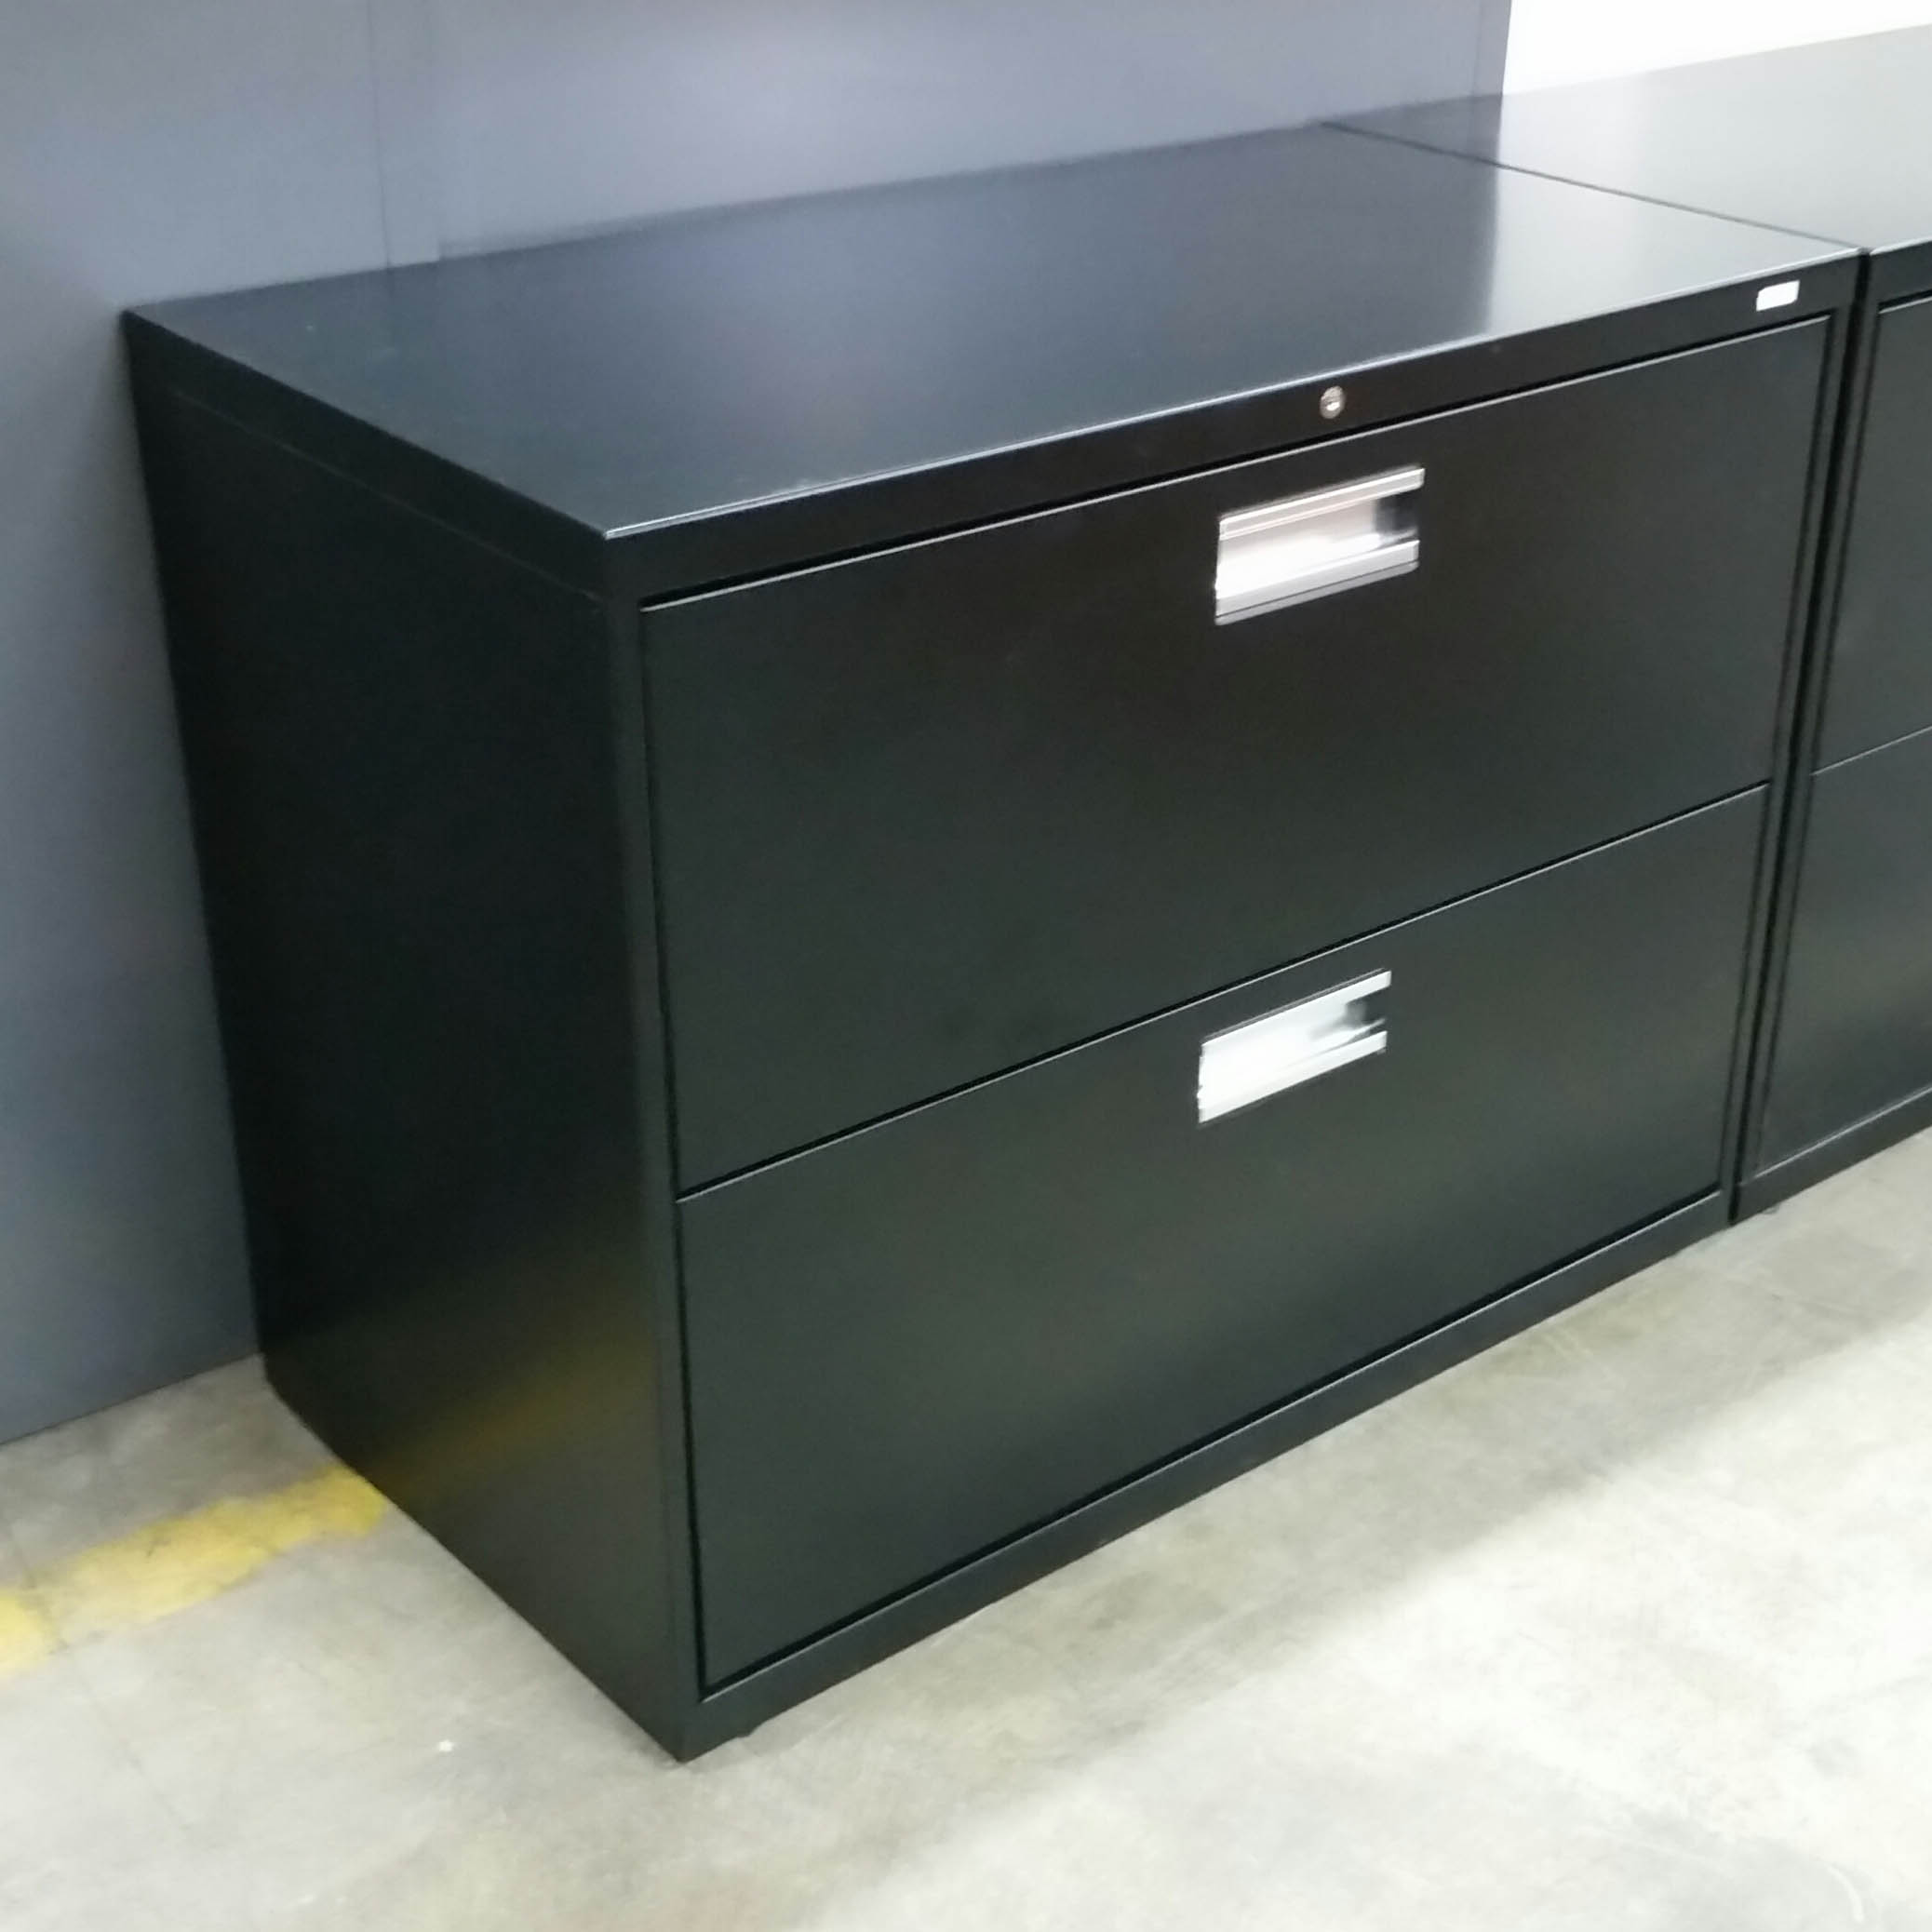 used file cabinets for sale downers grove arthur p ohara. Black Bedroom Furniture Sets. Home Design Ideas